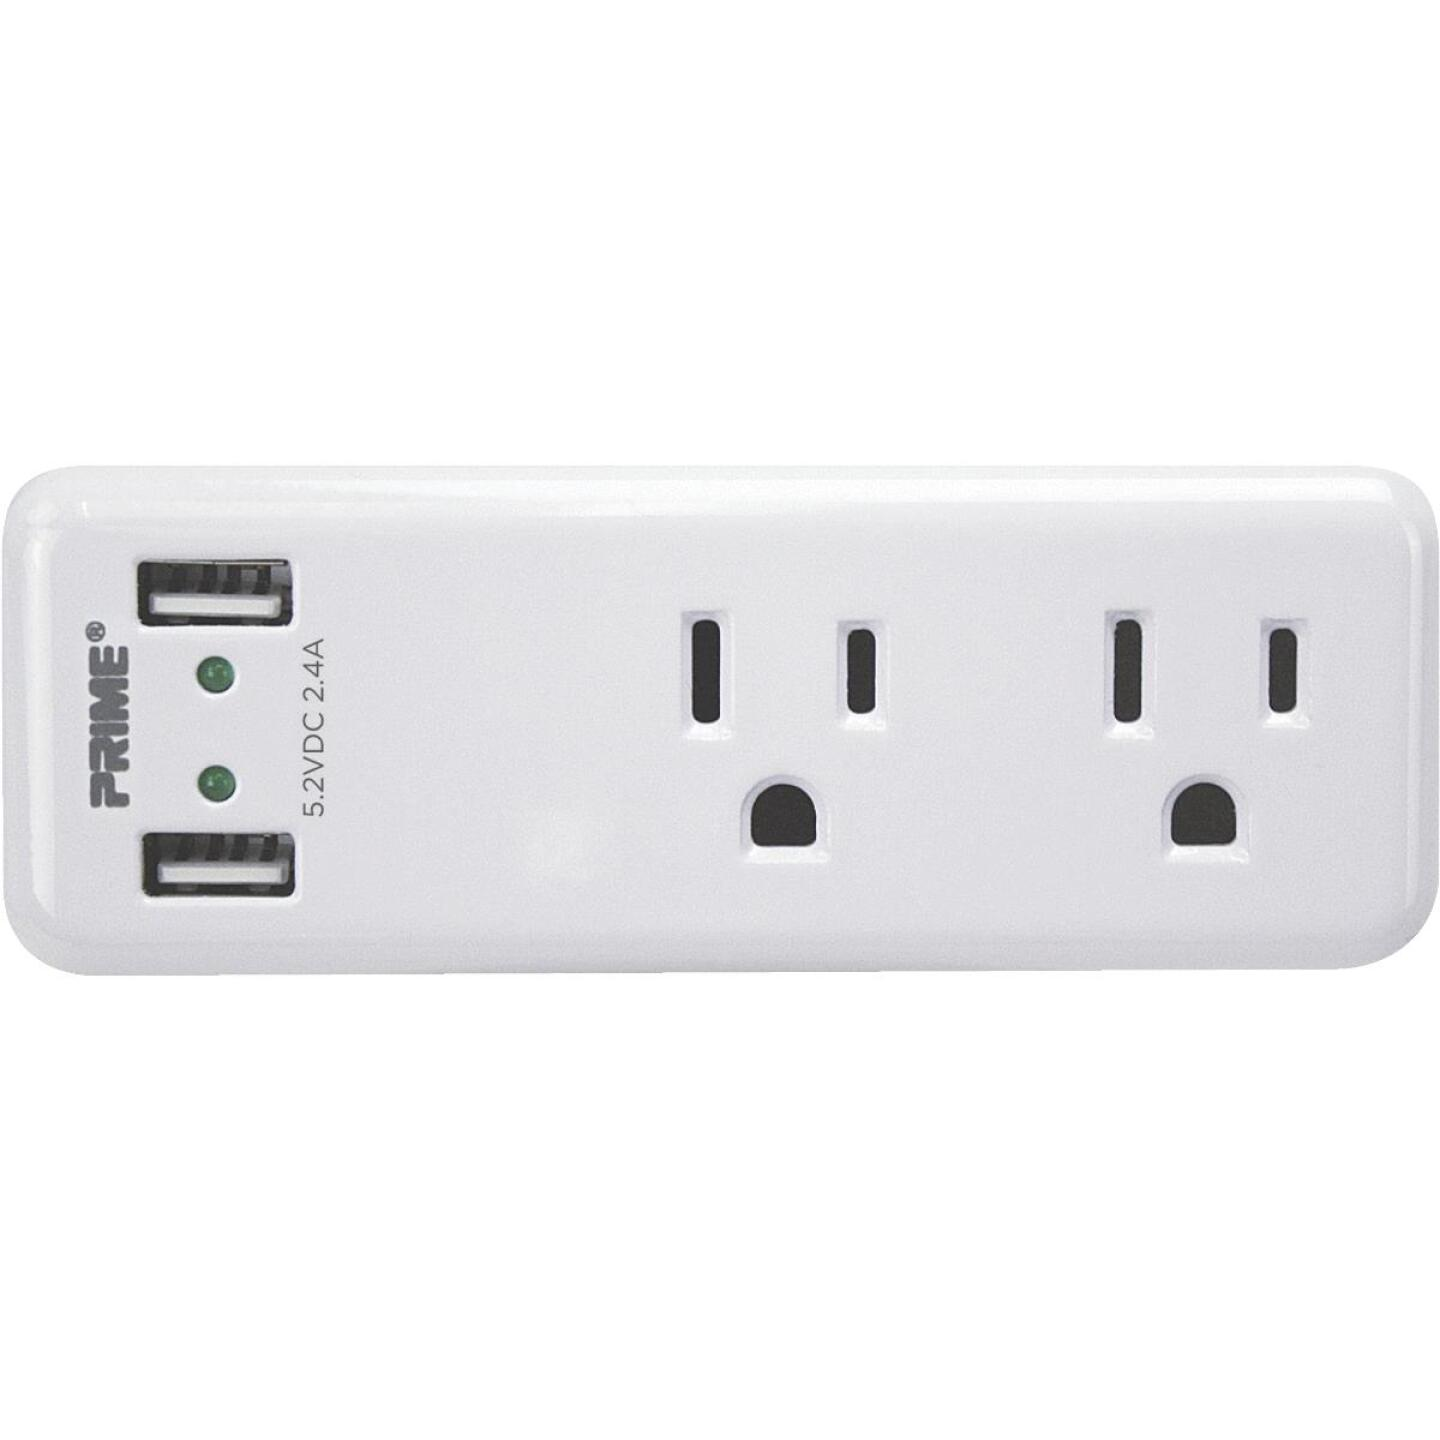 Prime Wire 2 Power & 2 USB White Space Saving USB Wall Charger Image 1